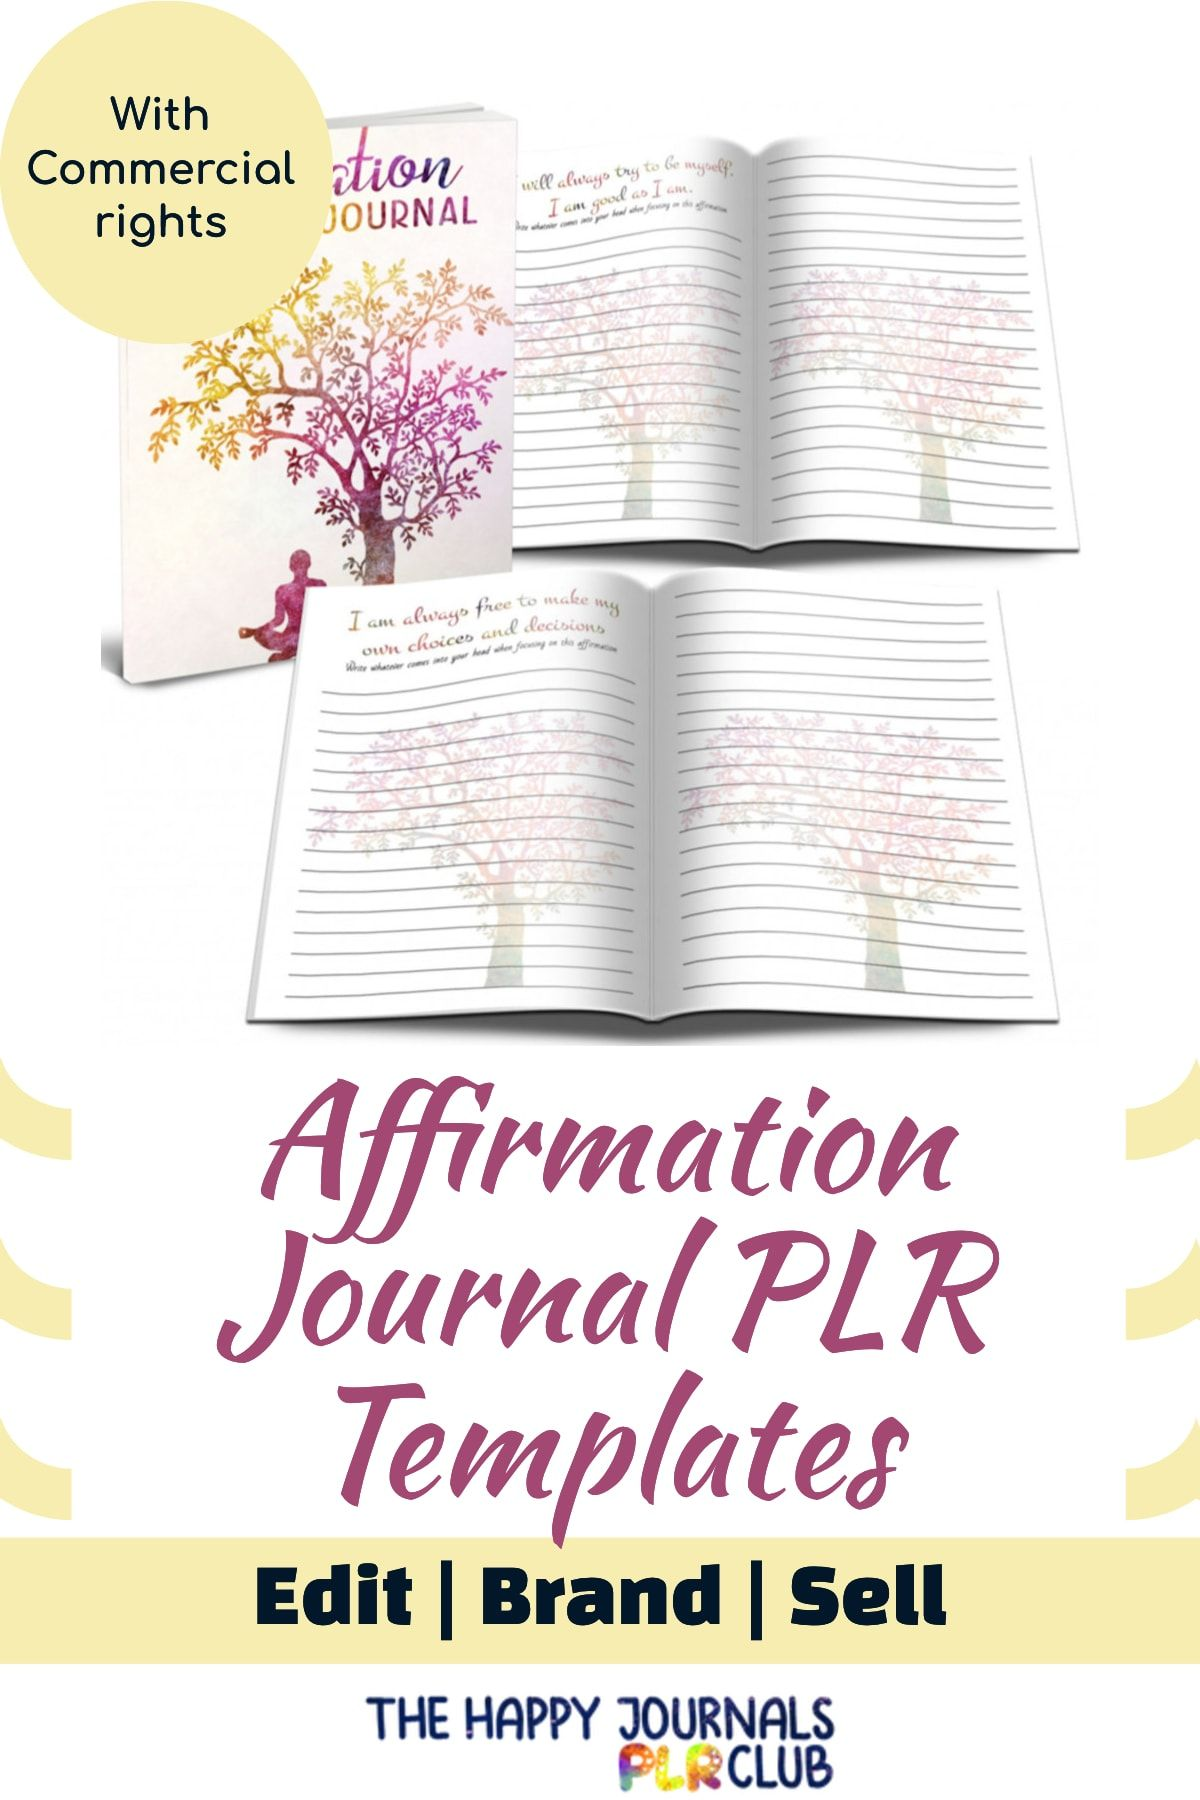 The Affirmation Journal Plr Templates Give You Everything